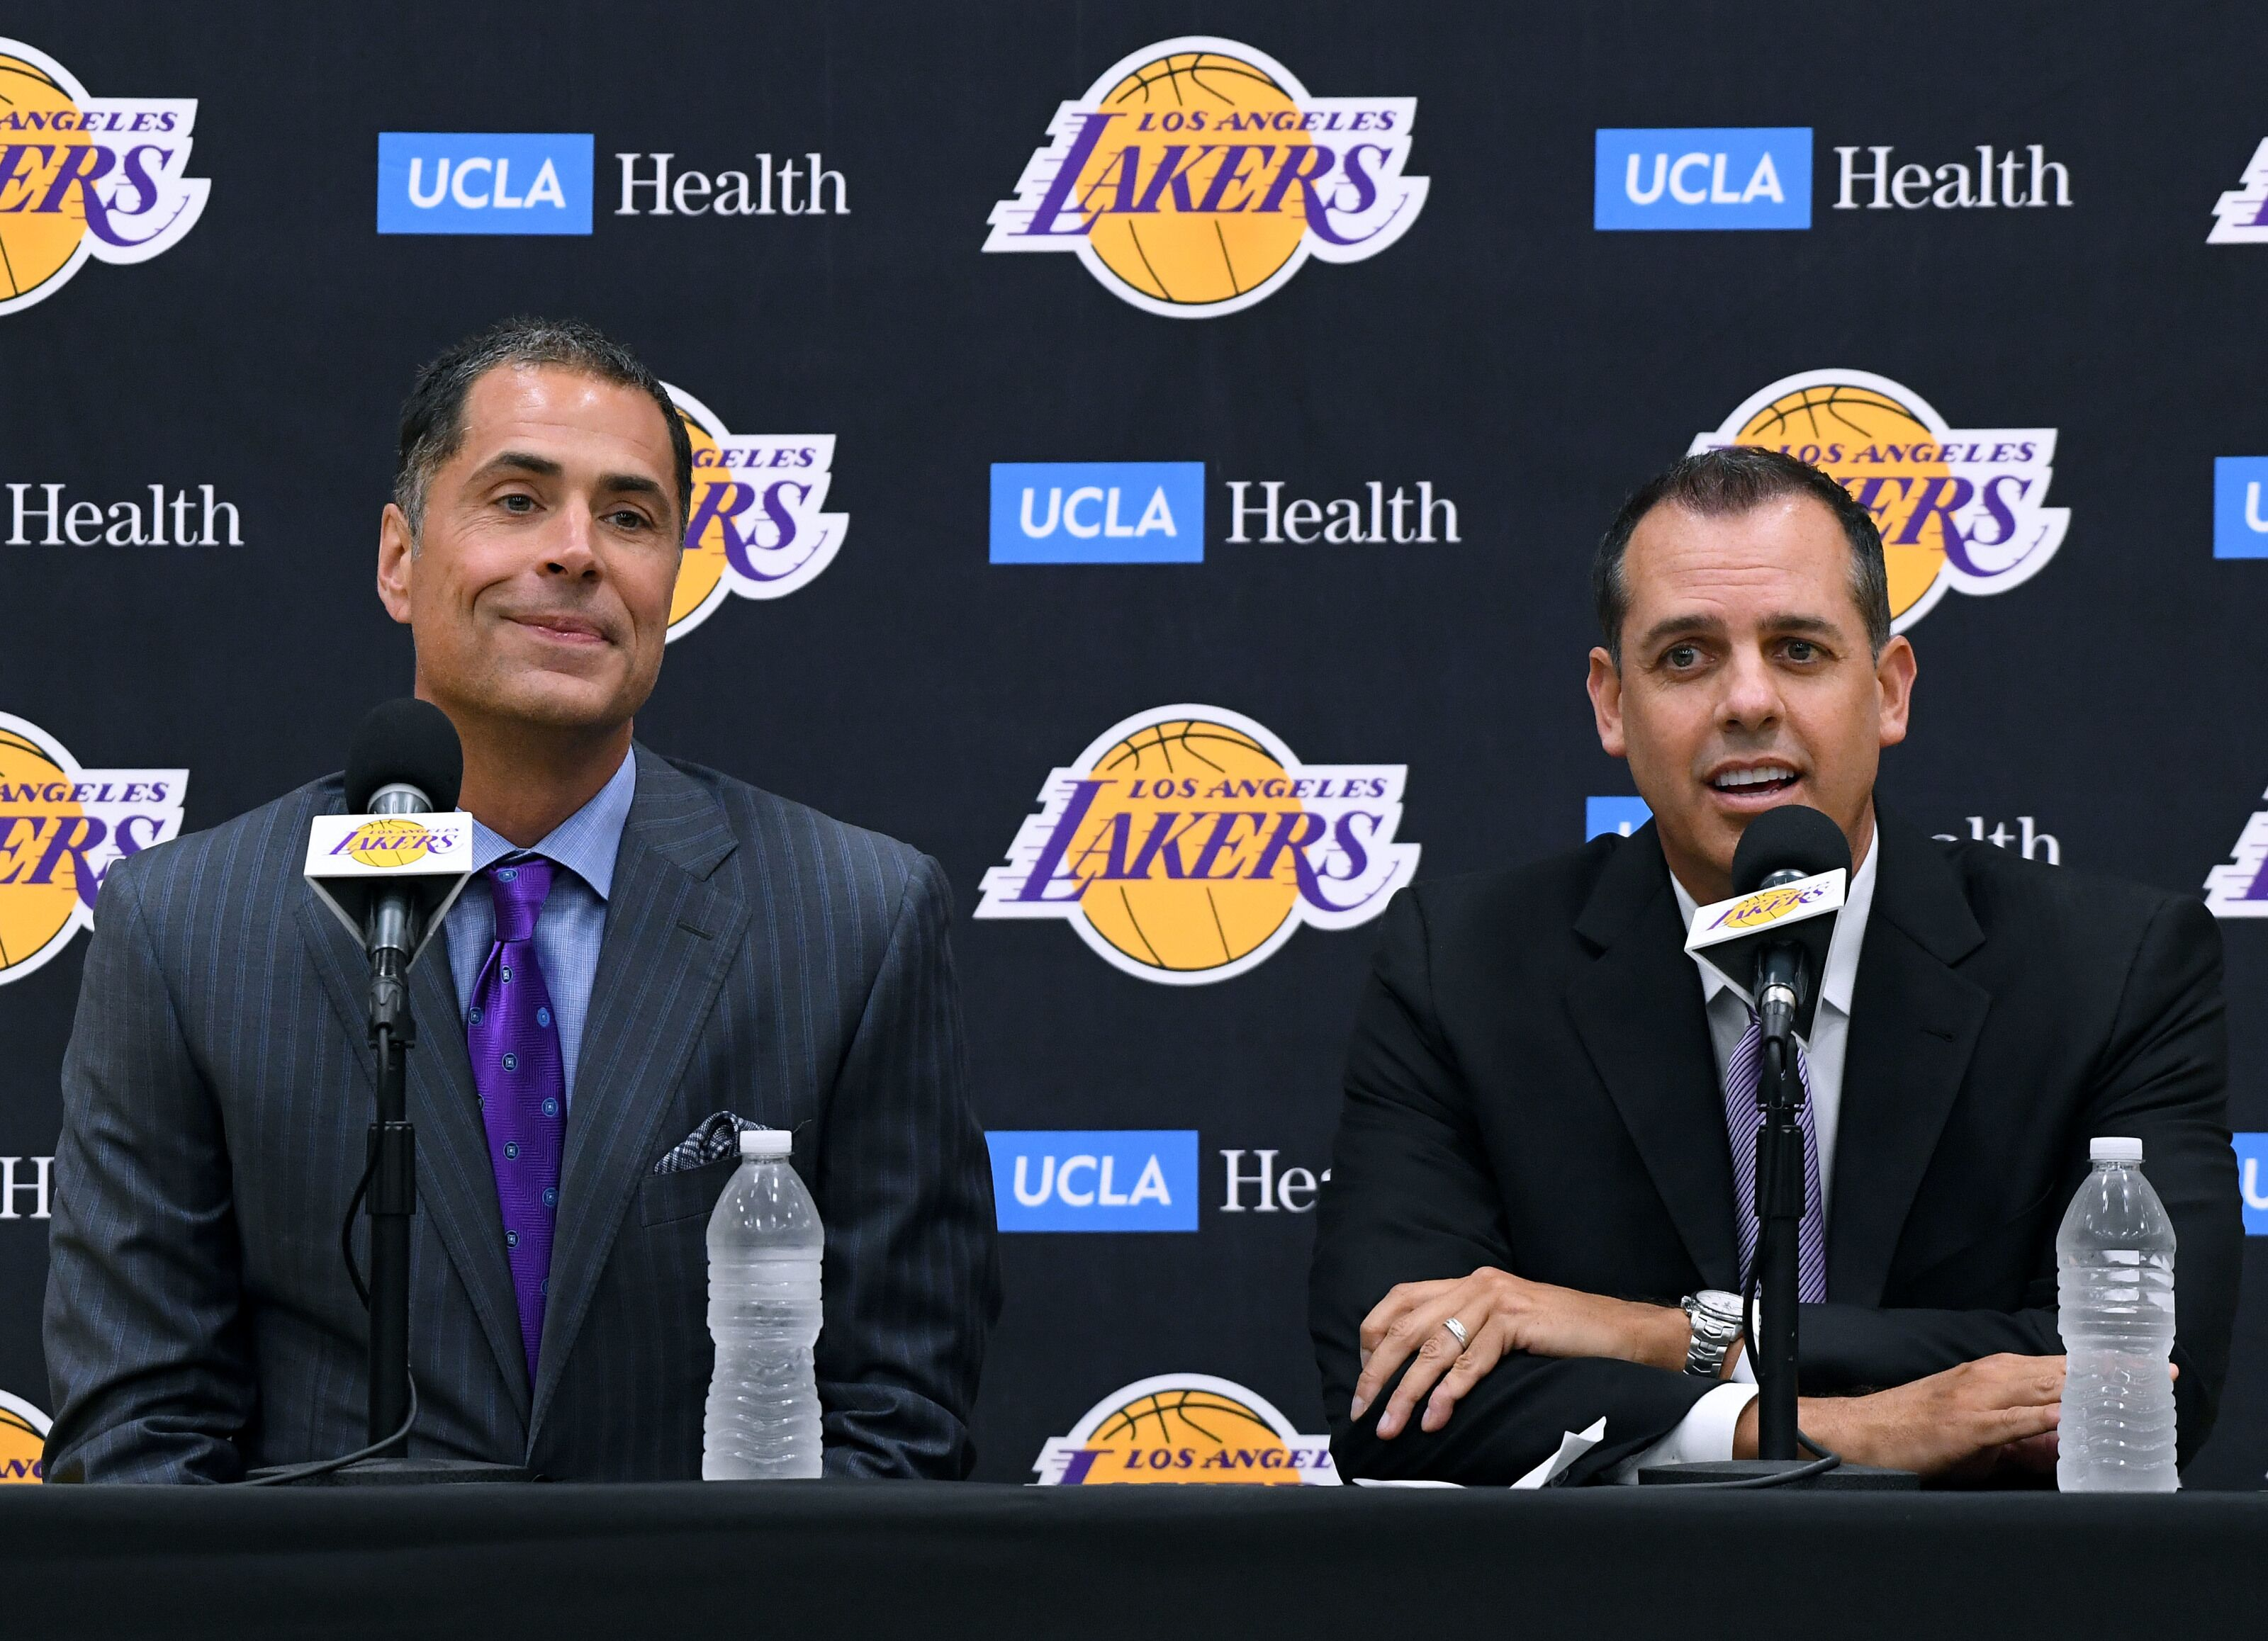 Los Angeles Lakers: Frank Vogel the biggest loser in this drama